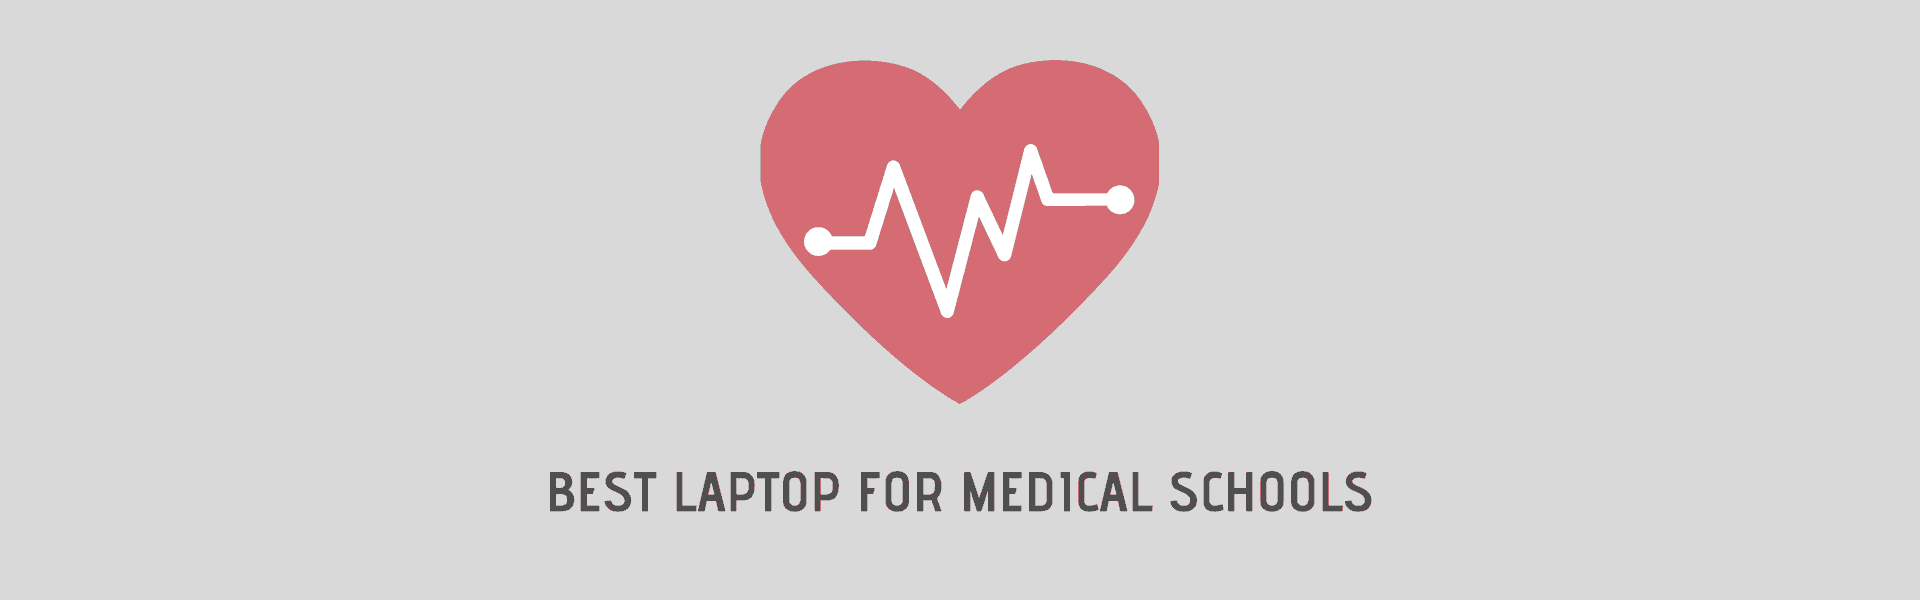 best laptop for medical schools